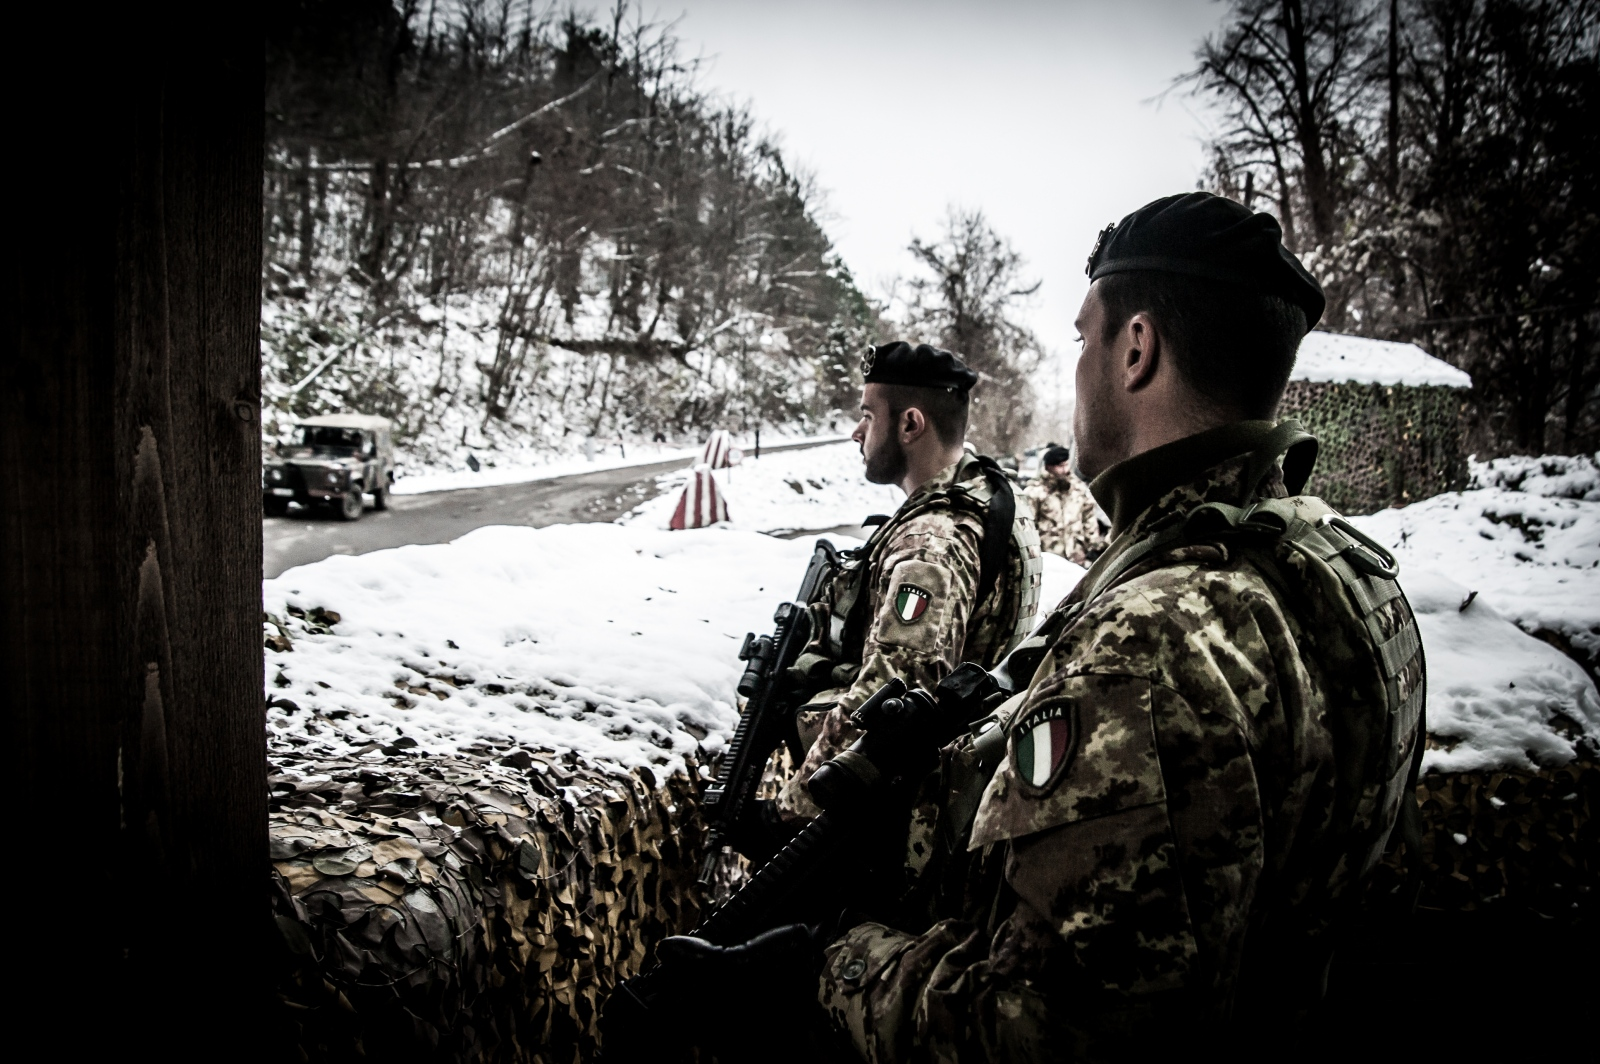 Two KFOR soldiers during the monitoring service at one of the checkpoints surrounding the monastery of Visoki Dečani.